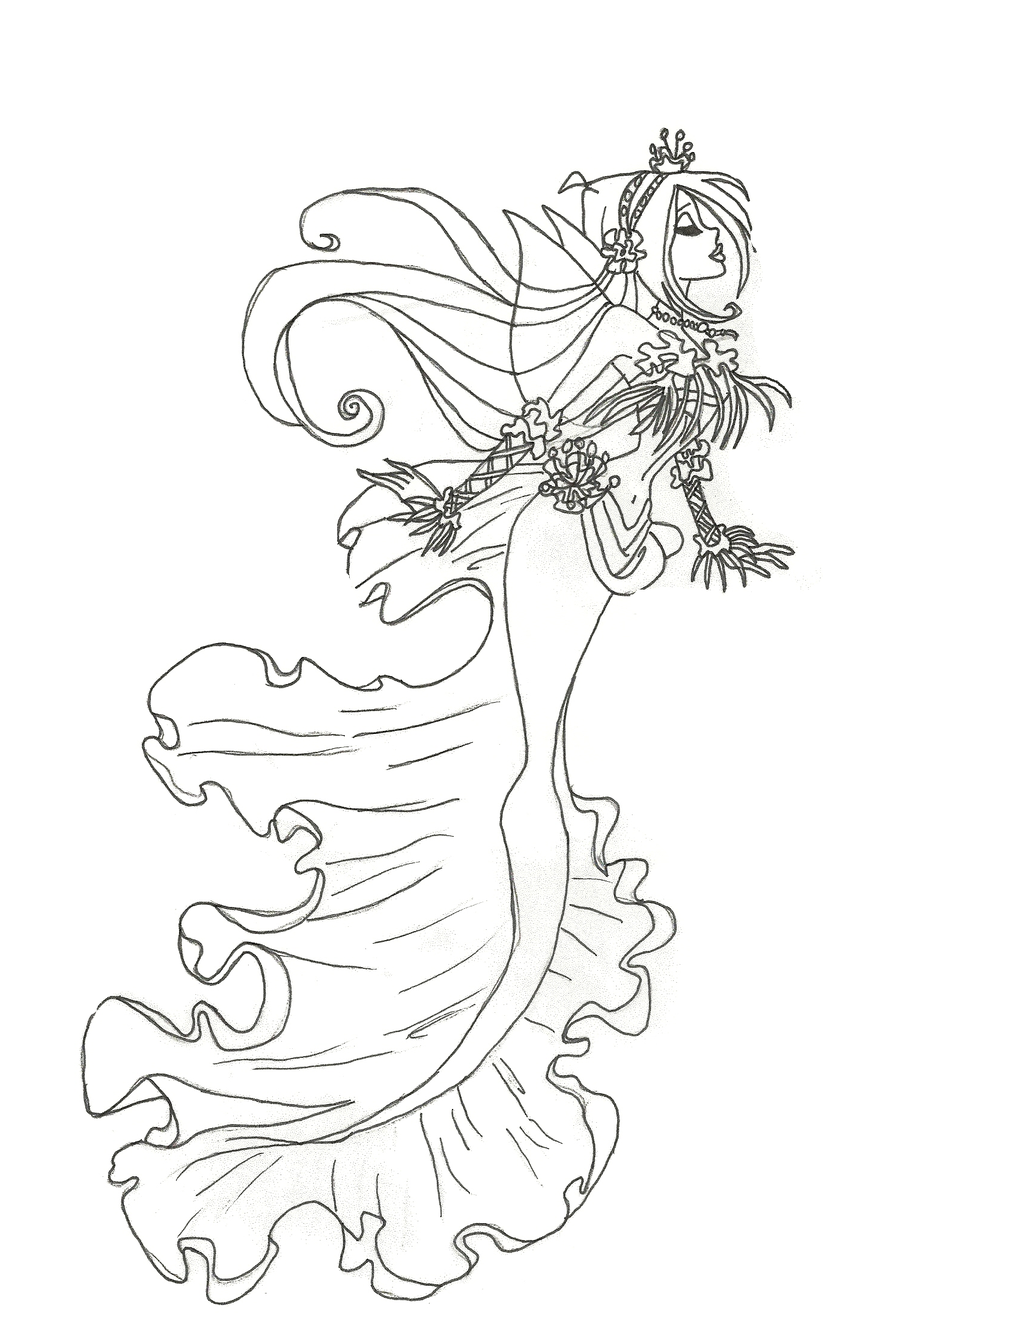 Winx mermaid coloring pages to print and download for free for Mermaid coloring pages printable